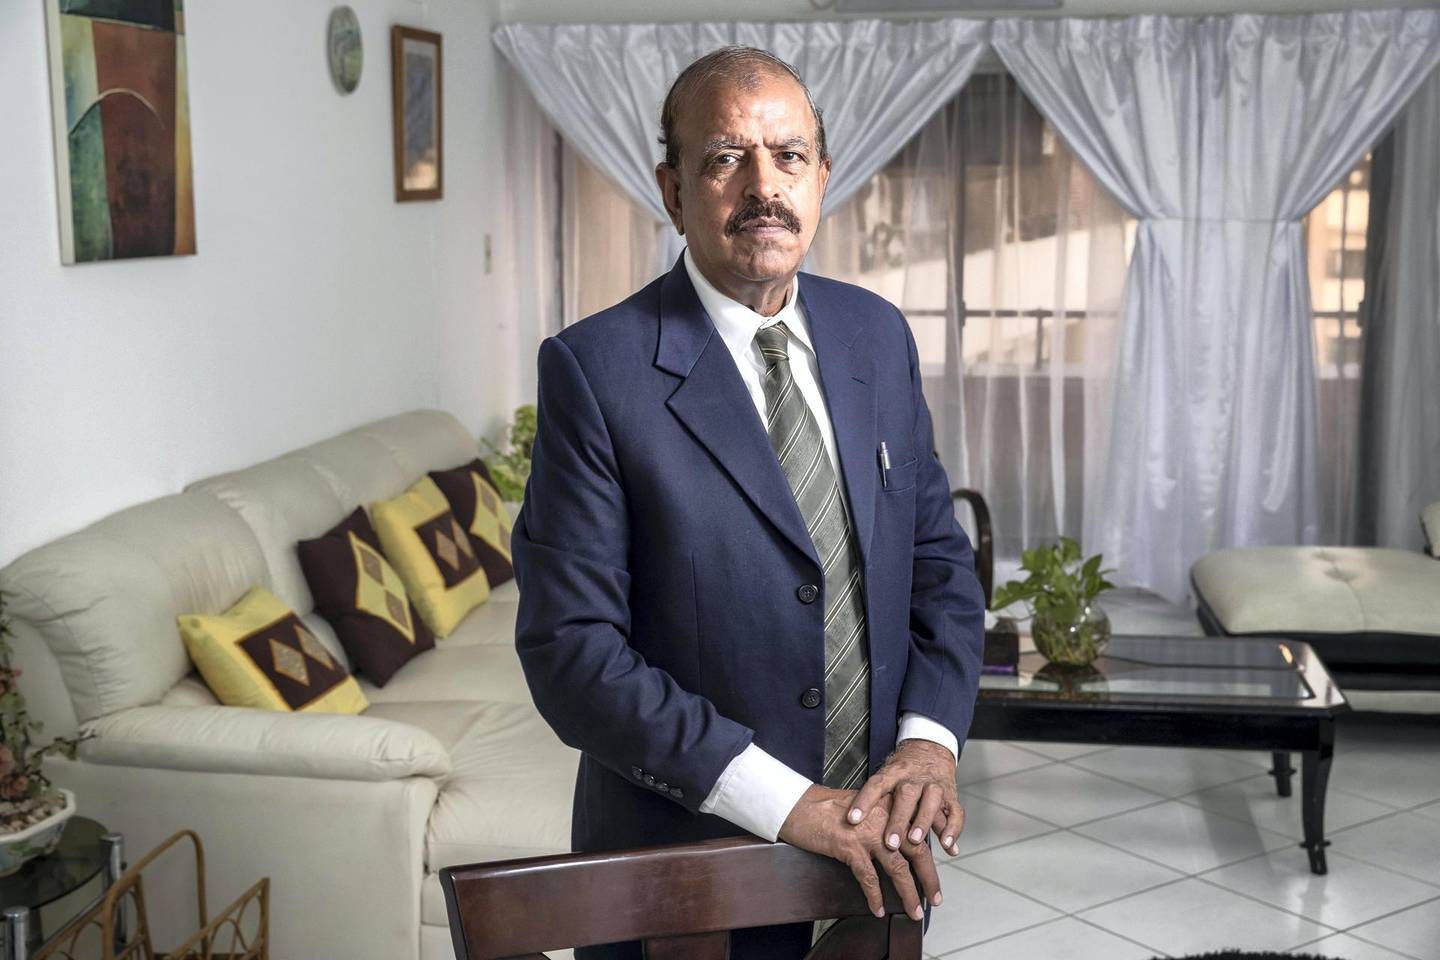 Muhammad Iqbal-DXBMuhammad Iqbal pictured in his home in Dubai for a story on if it is better to buy or rent property in the UAE on April 21st, 2021. Antonie Robertson / The National.Reporter: Deepthi Nair for Business